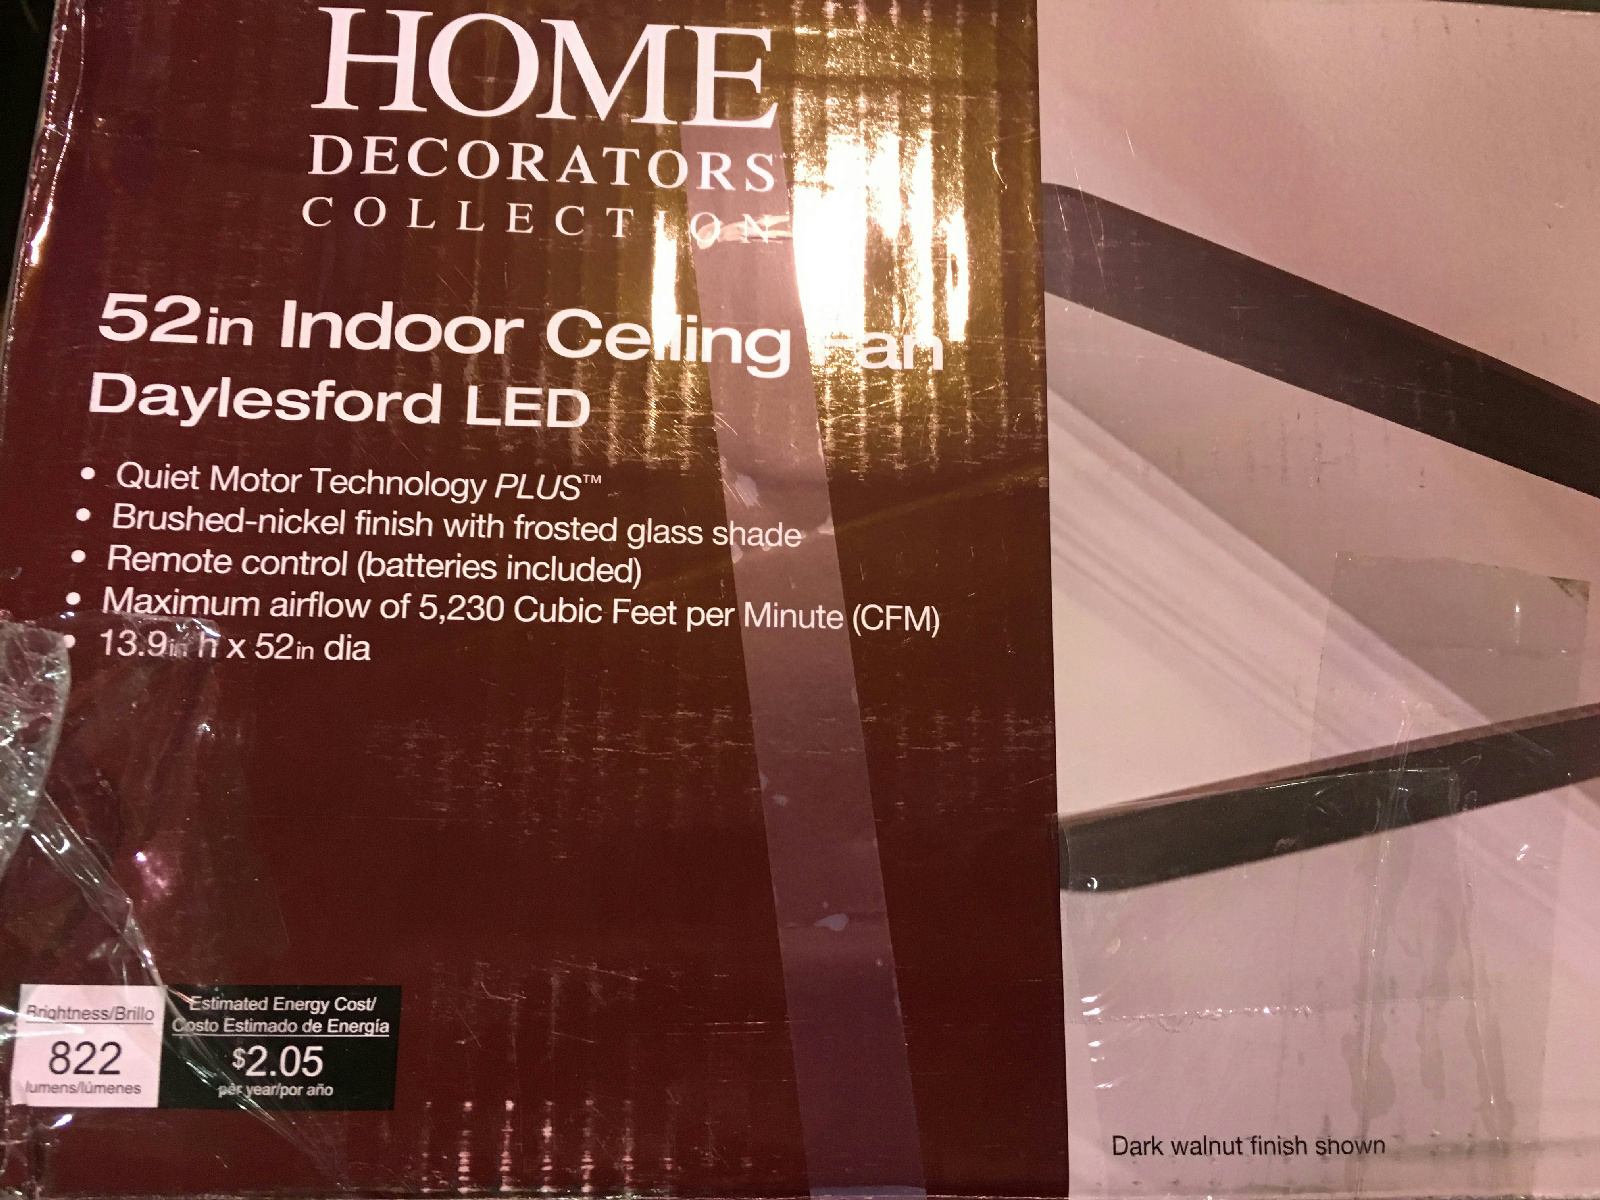 Home Decorators Collection Daylesford 52 In. LED Brushed